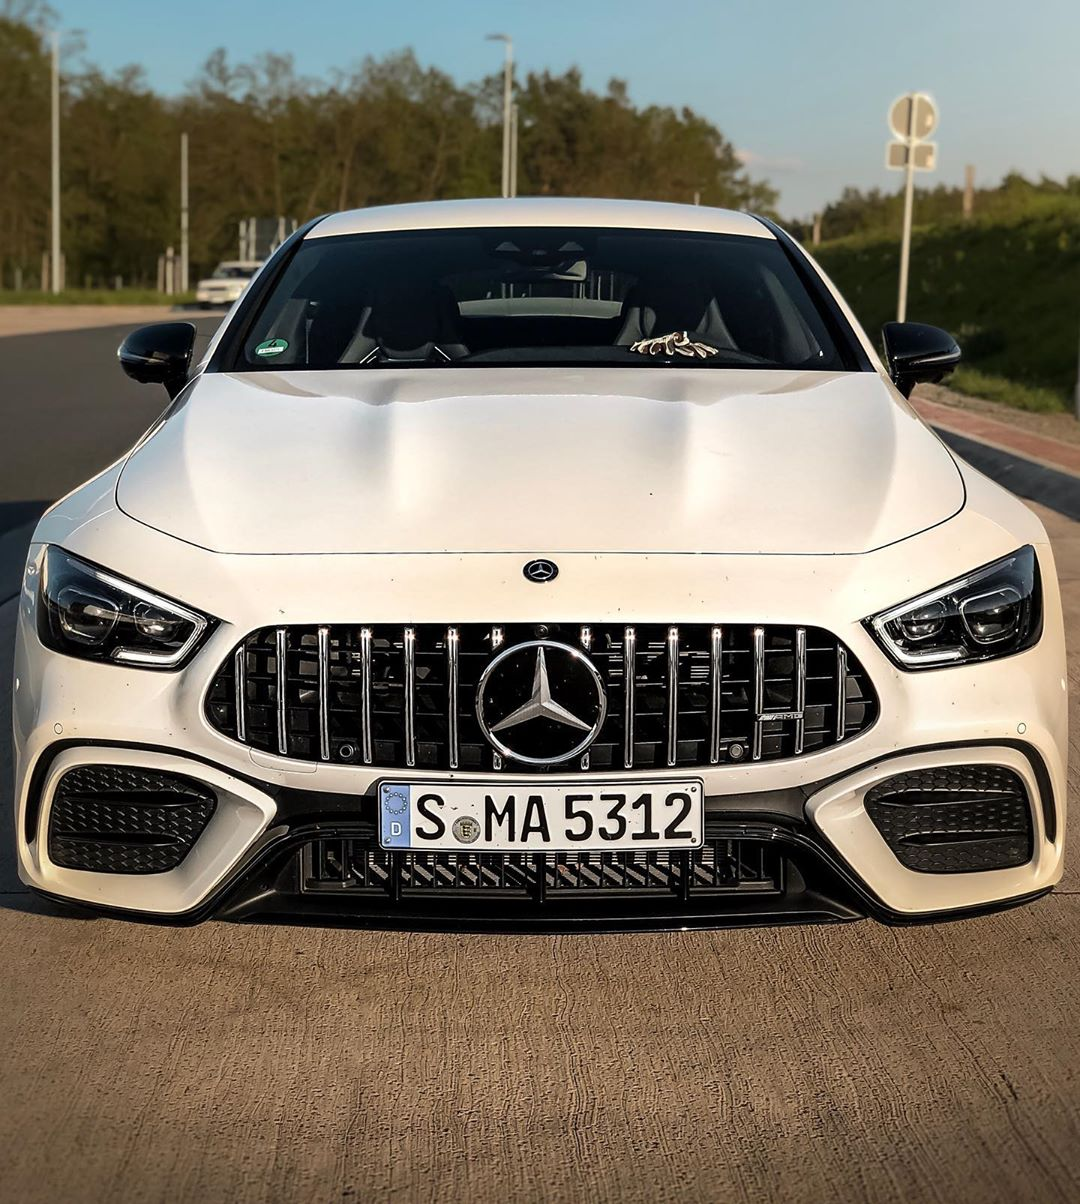 """One of my favorite cars this year despite the """"lack"""" of power👌….this GT 4-door with all it's style makes your life Special! Big buying recommendation even for the 53s & 43s☝️‼️ #mercedesamg #mbsocialcar #mbcars #amg #amggt4door #amggt53 #gt53 #automanntv"""